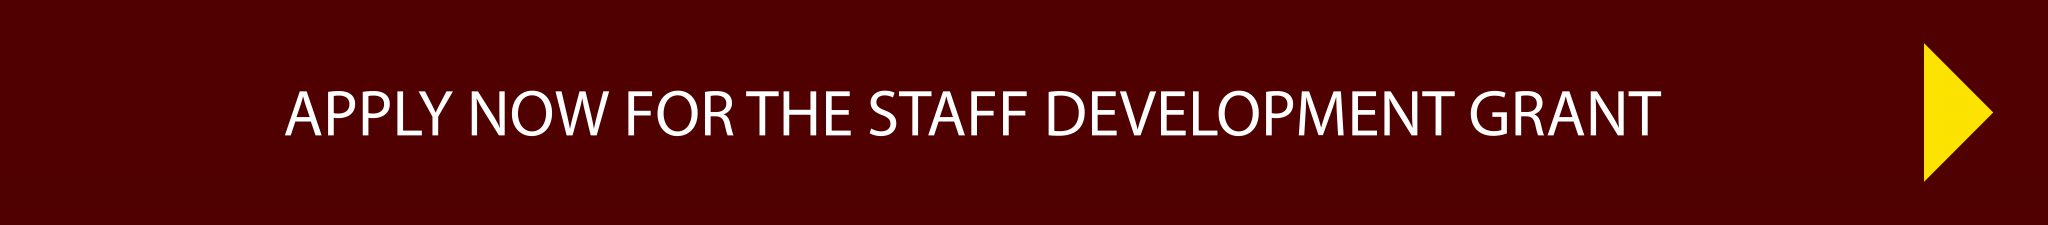 Click here to apply for the Staff Development Grant